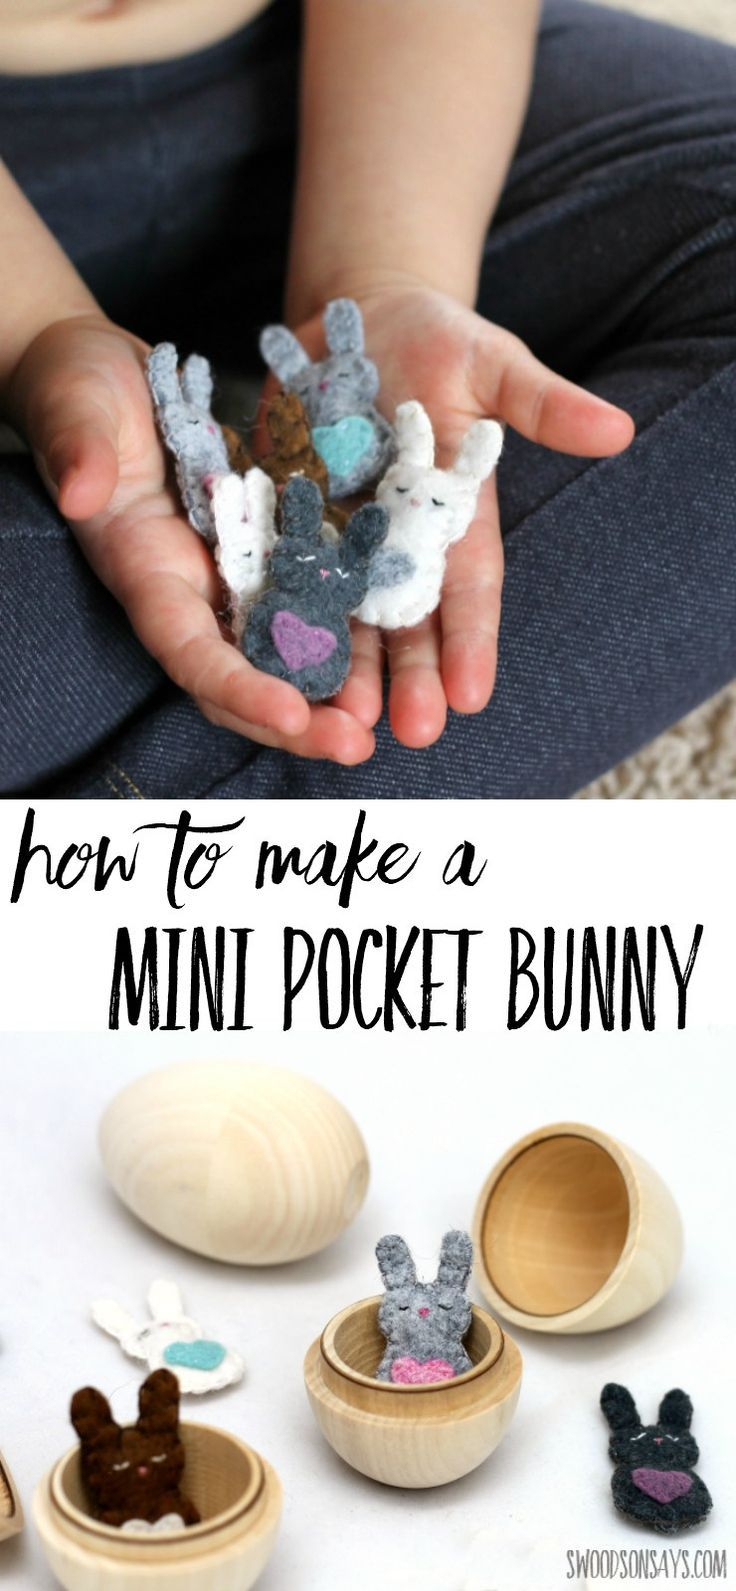 Free felt bunny sewing pattern alert! Hand sewn and adorable, this tiny bunny will tuck into an Easter egg or a kid's pocket. Just barely bigger than a quarter, it uses up felt scraps with hand stitching to make the sweetest thing to sew for spring. This free bunny softie is sure to be a hit with little hands. #freesewingpattern #easter